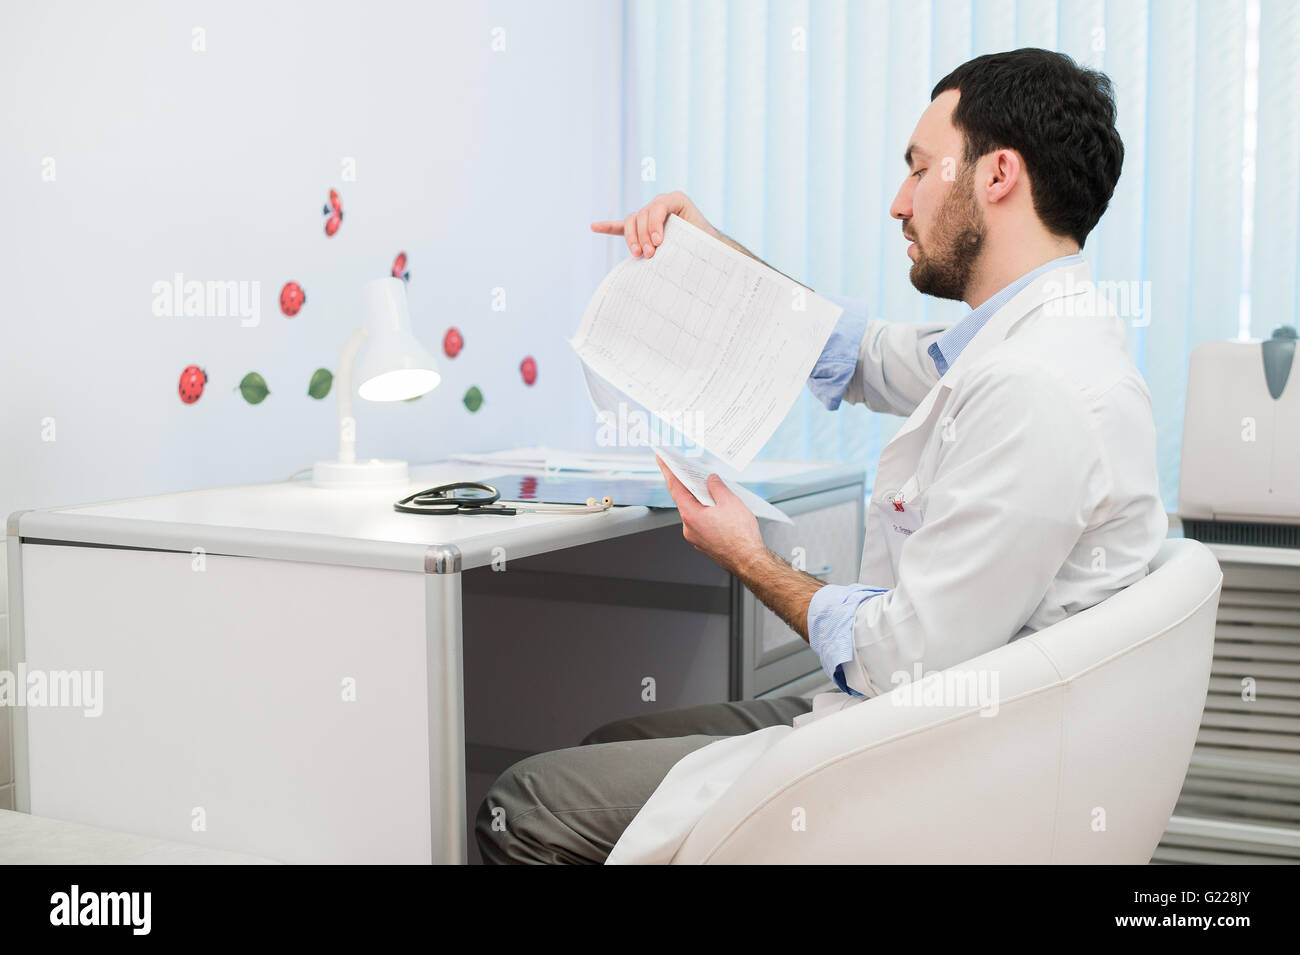 Doctor working with test results of his patient at office - Stock Image